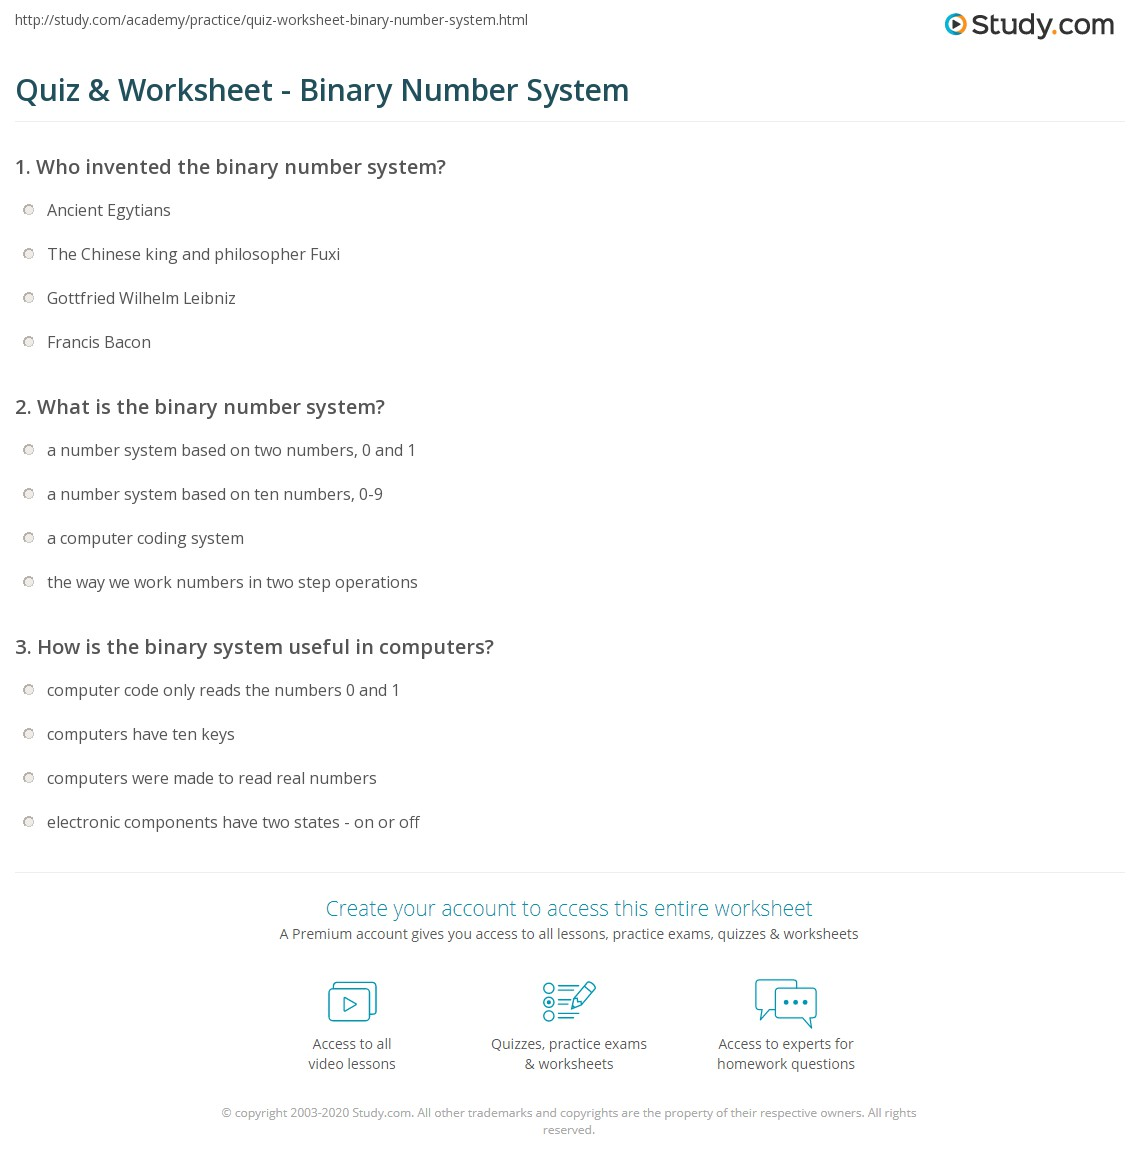 Quiz & Worksheet - Binary Number System | Study.com